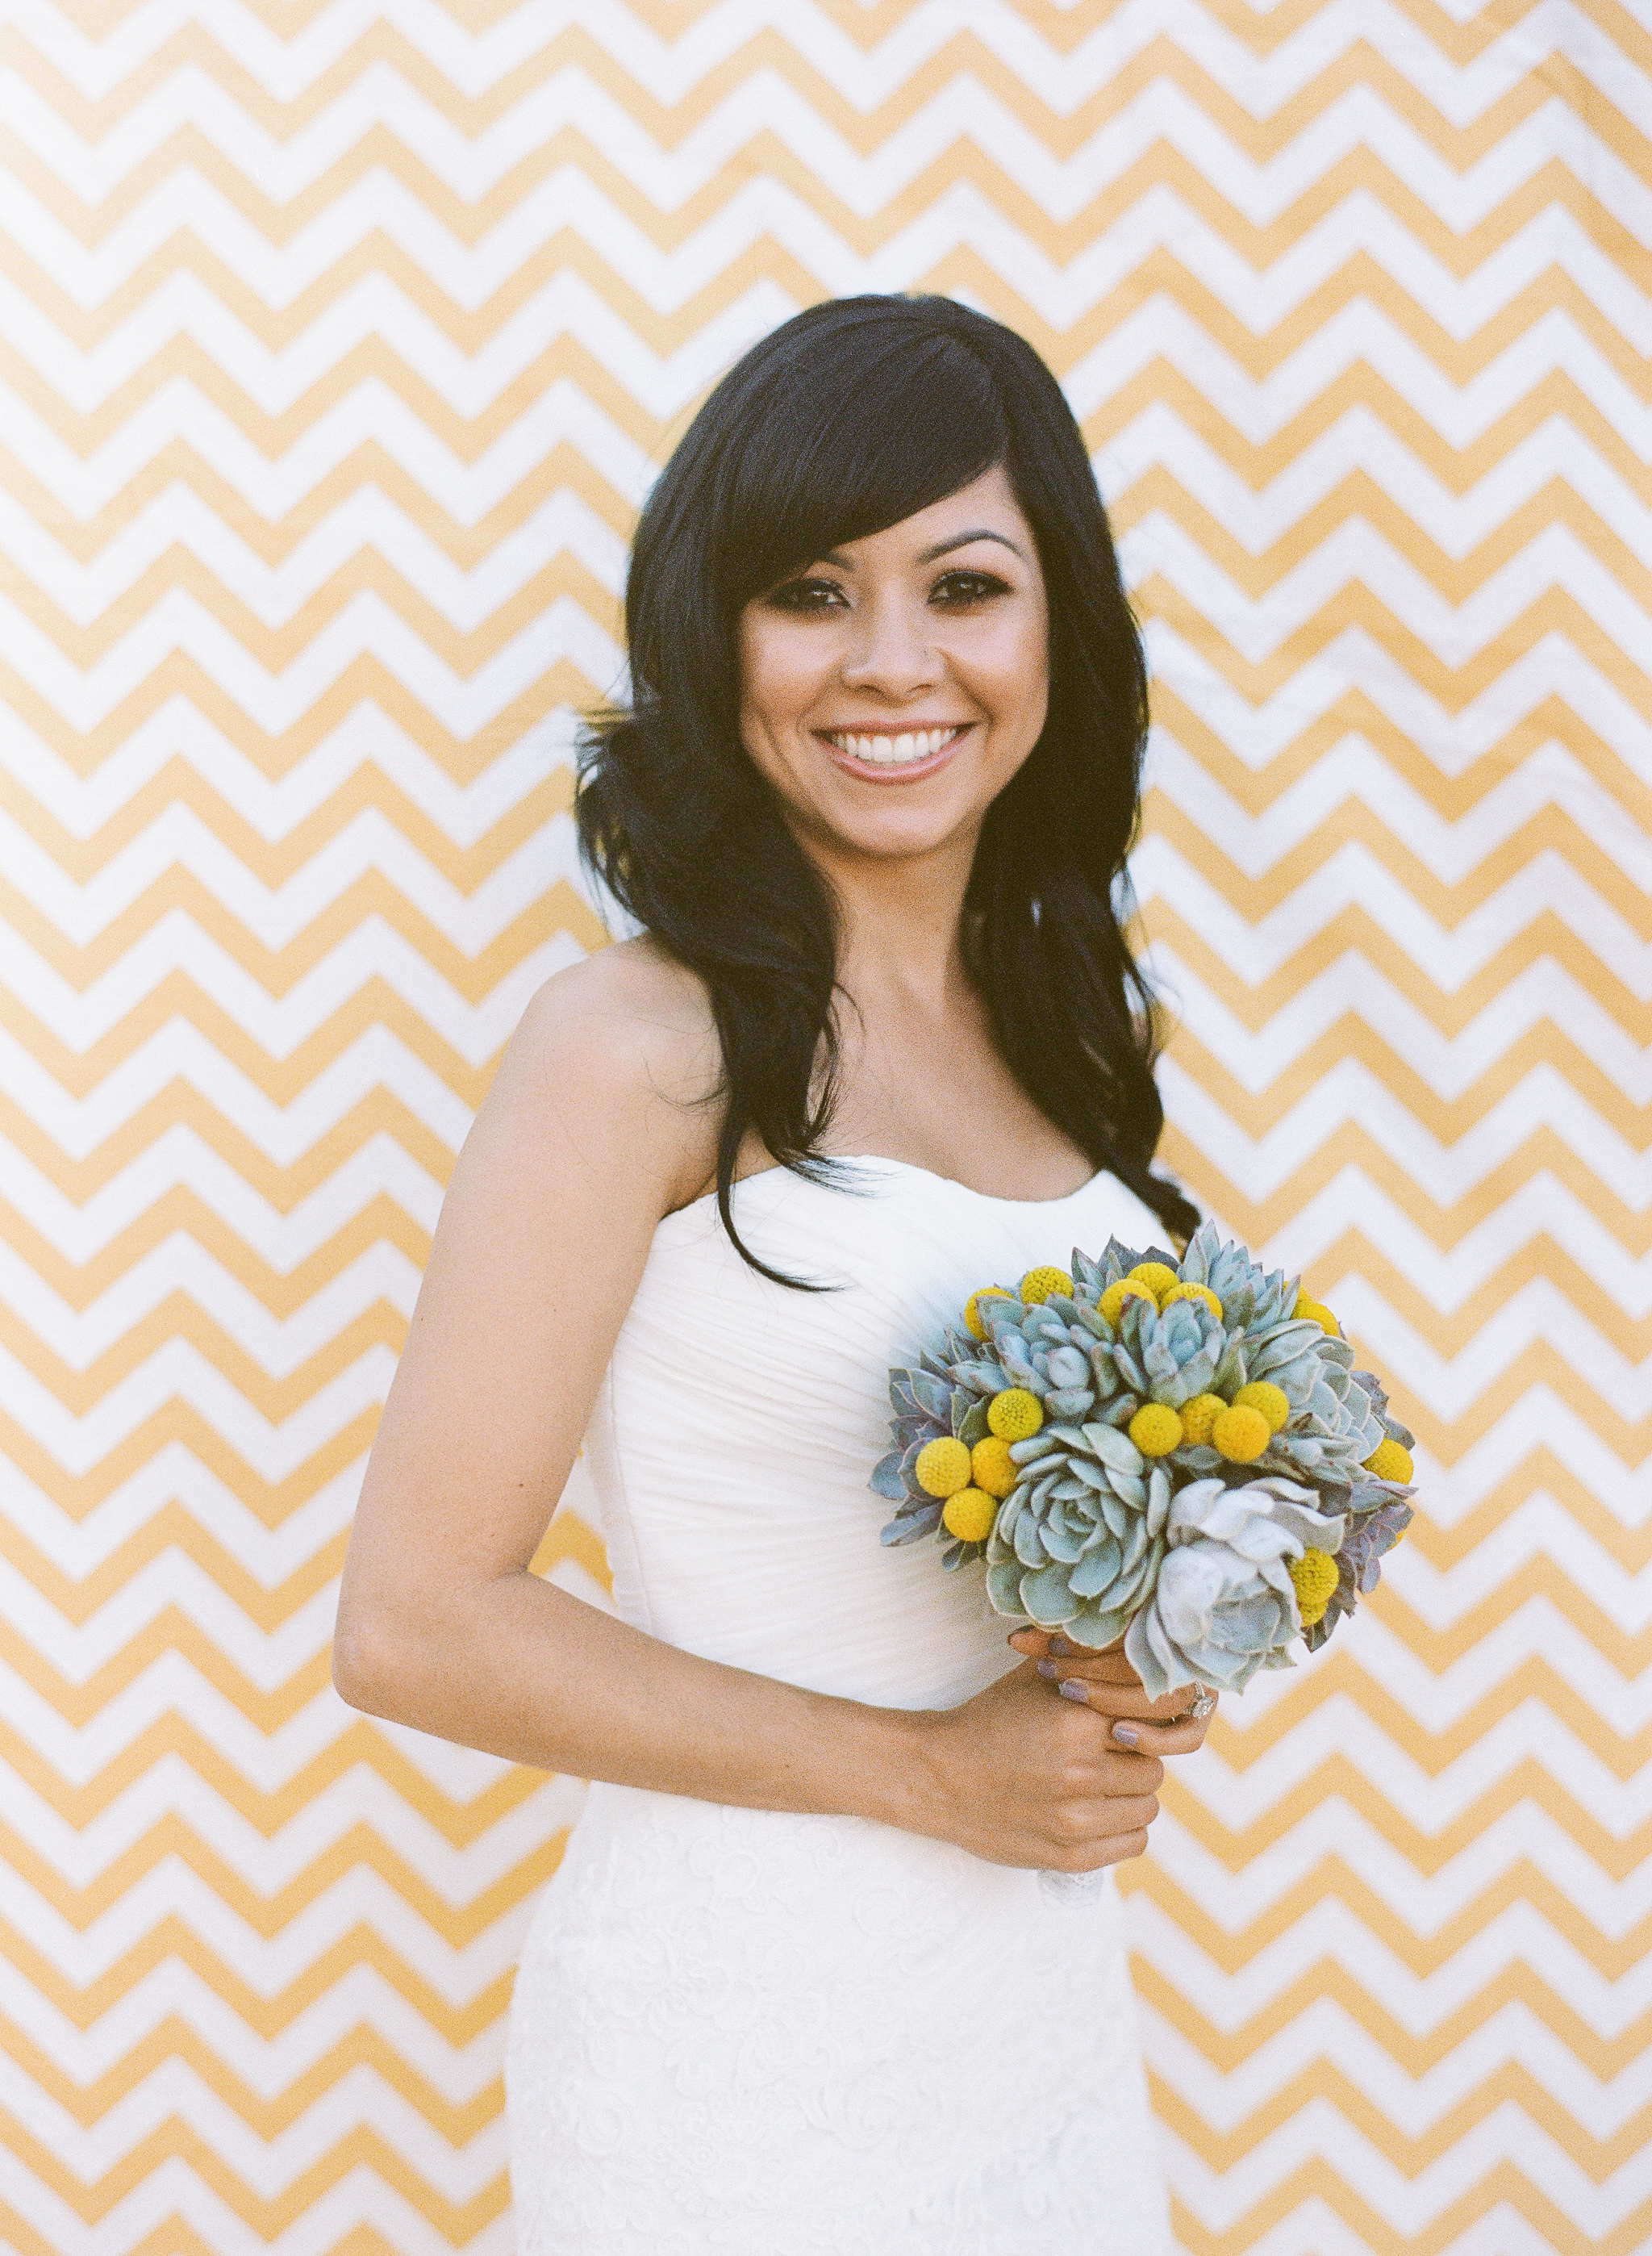 white, yellow, Bride, Bouquet, Succulents, Chevron, Andrea eric